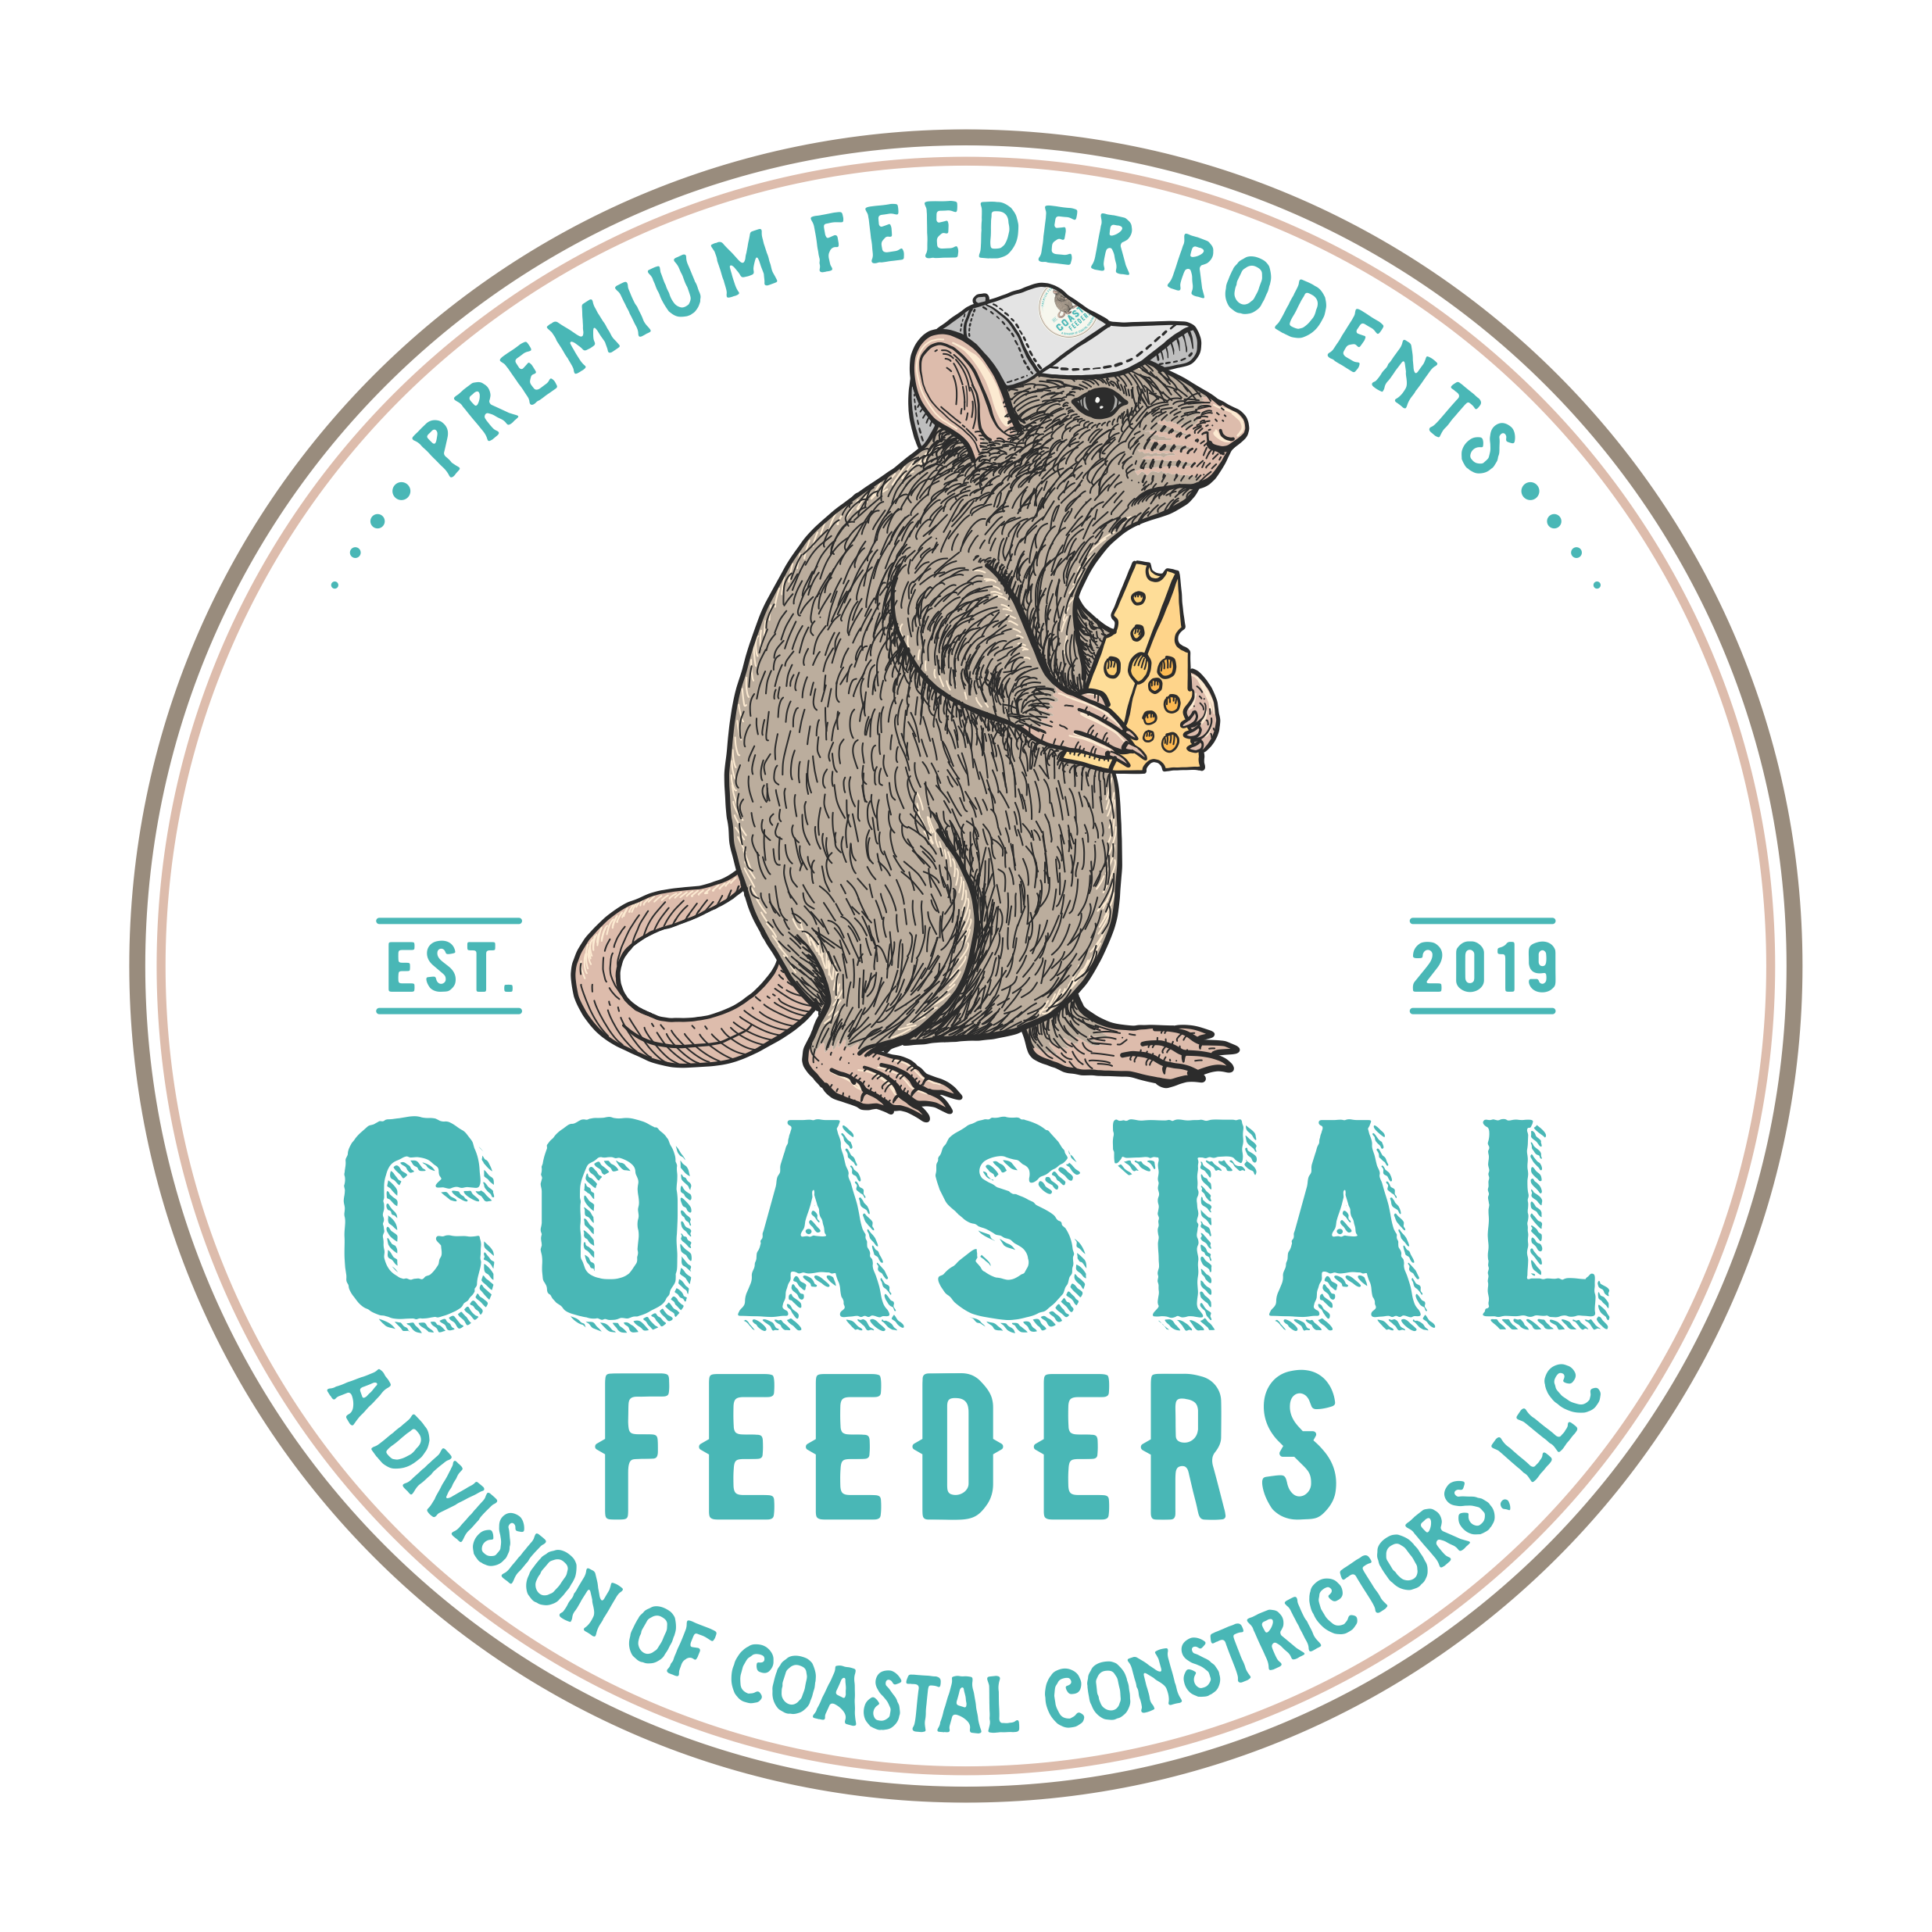 Coastal Feeders, a division of Coastal Constrictors, LLC